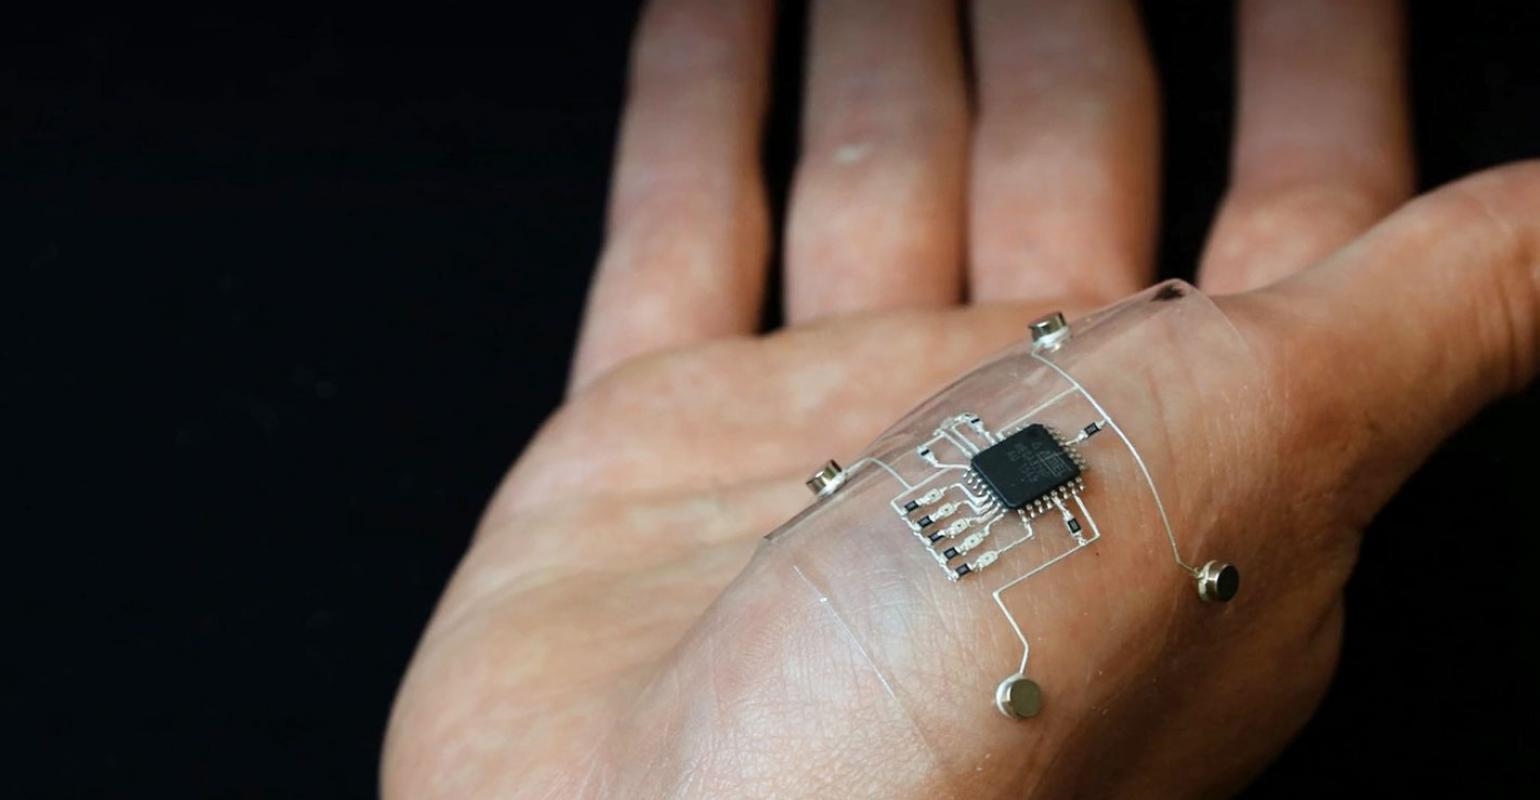 Design Hmi Flexible Hybrid Electronics Product Tags Printed Circuit Board In The Lab Researchers Used A 3d Printer To Create Conductive Traces Of Silver Infused Thermoplastic Polyurethane Pick And Place Method